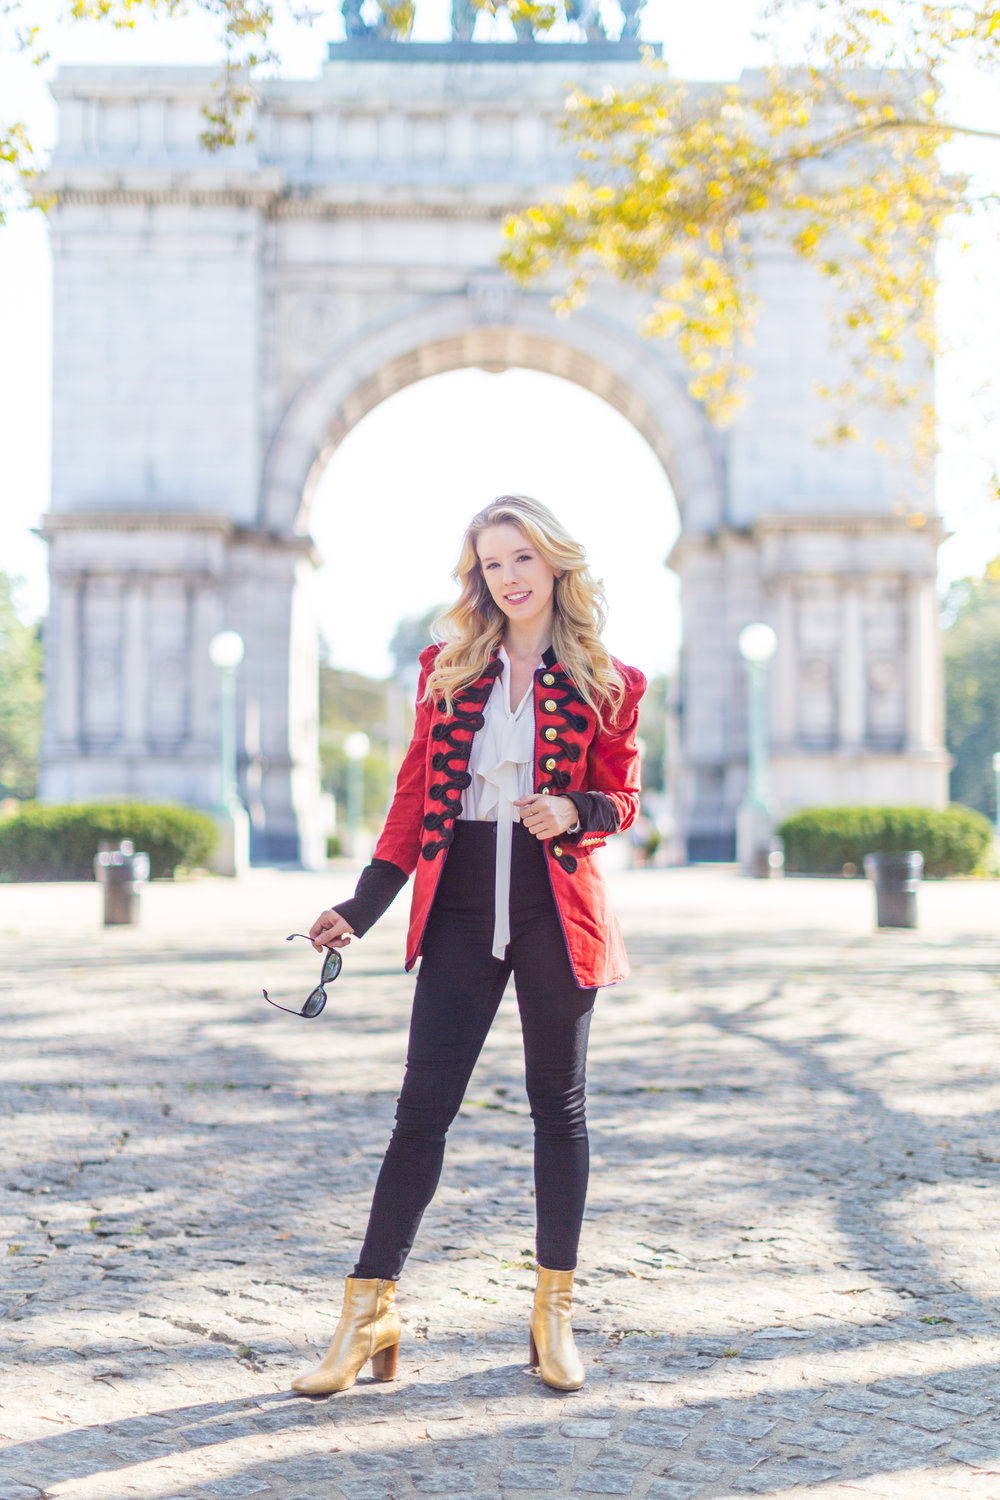 Fall Fashion Red Band Jacket Trendy-4.jpg